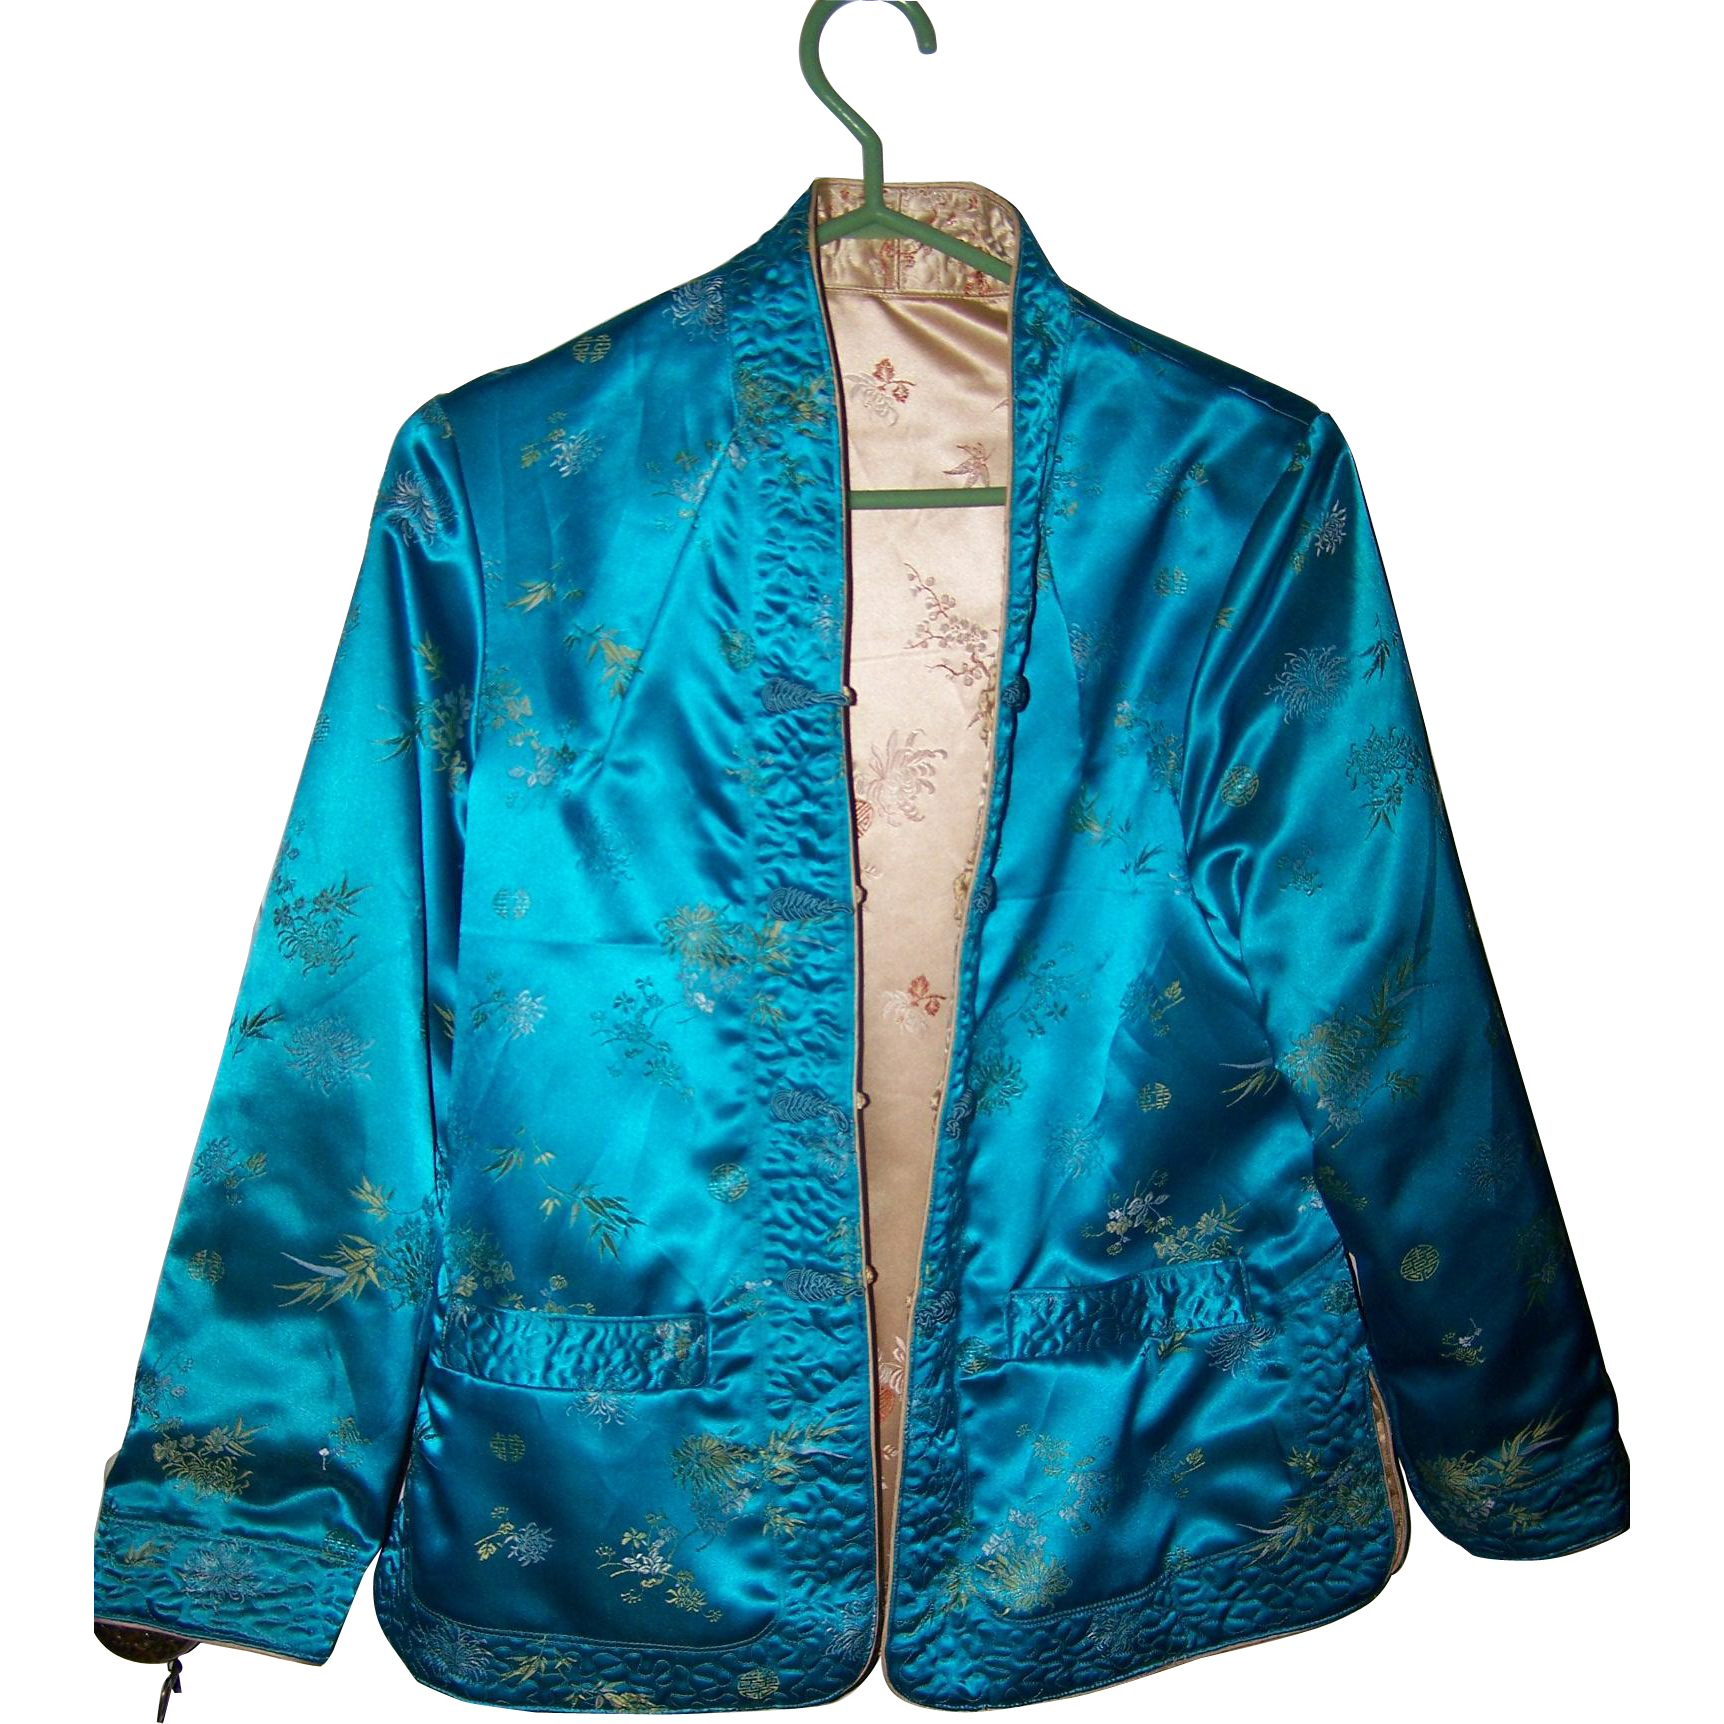 Lovely Quality  Gently Used Reversible MEEI LIH Asian Style Silk Jacket